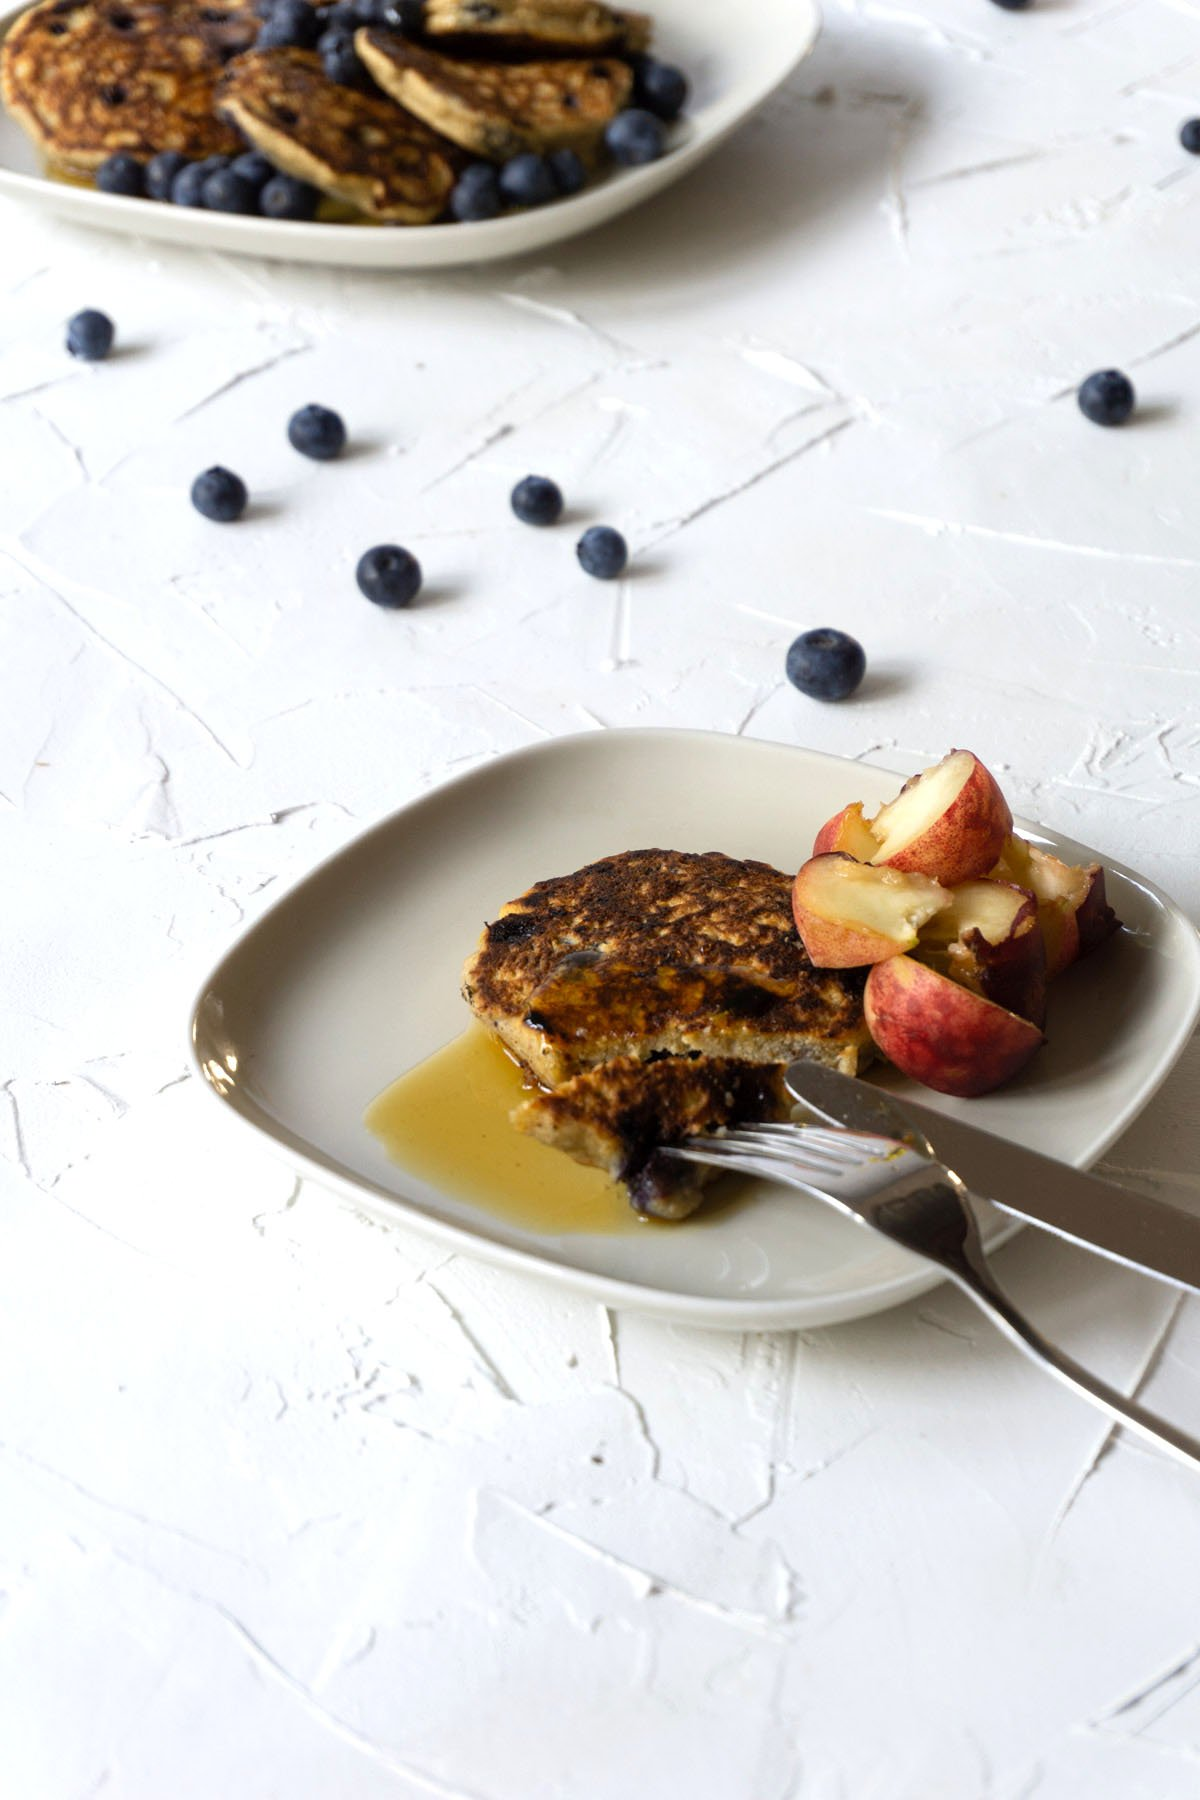 Blueberry Ricotta Pancakes eaten with maple syrup and peaches